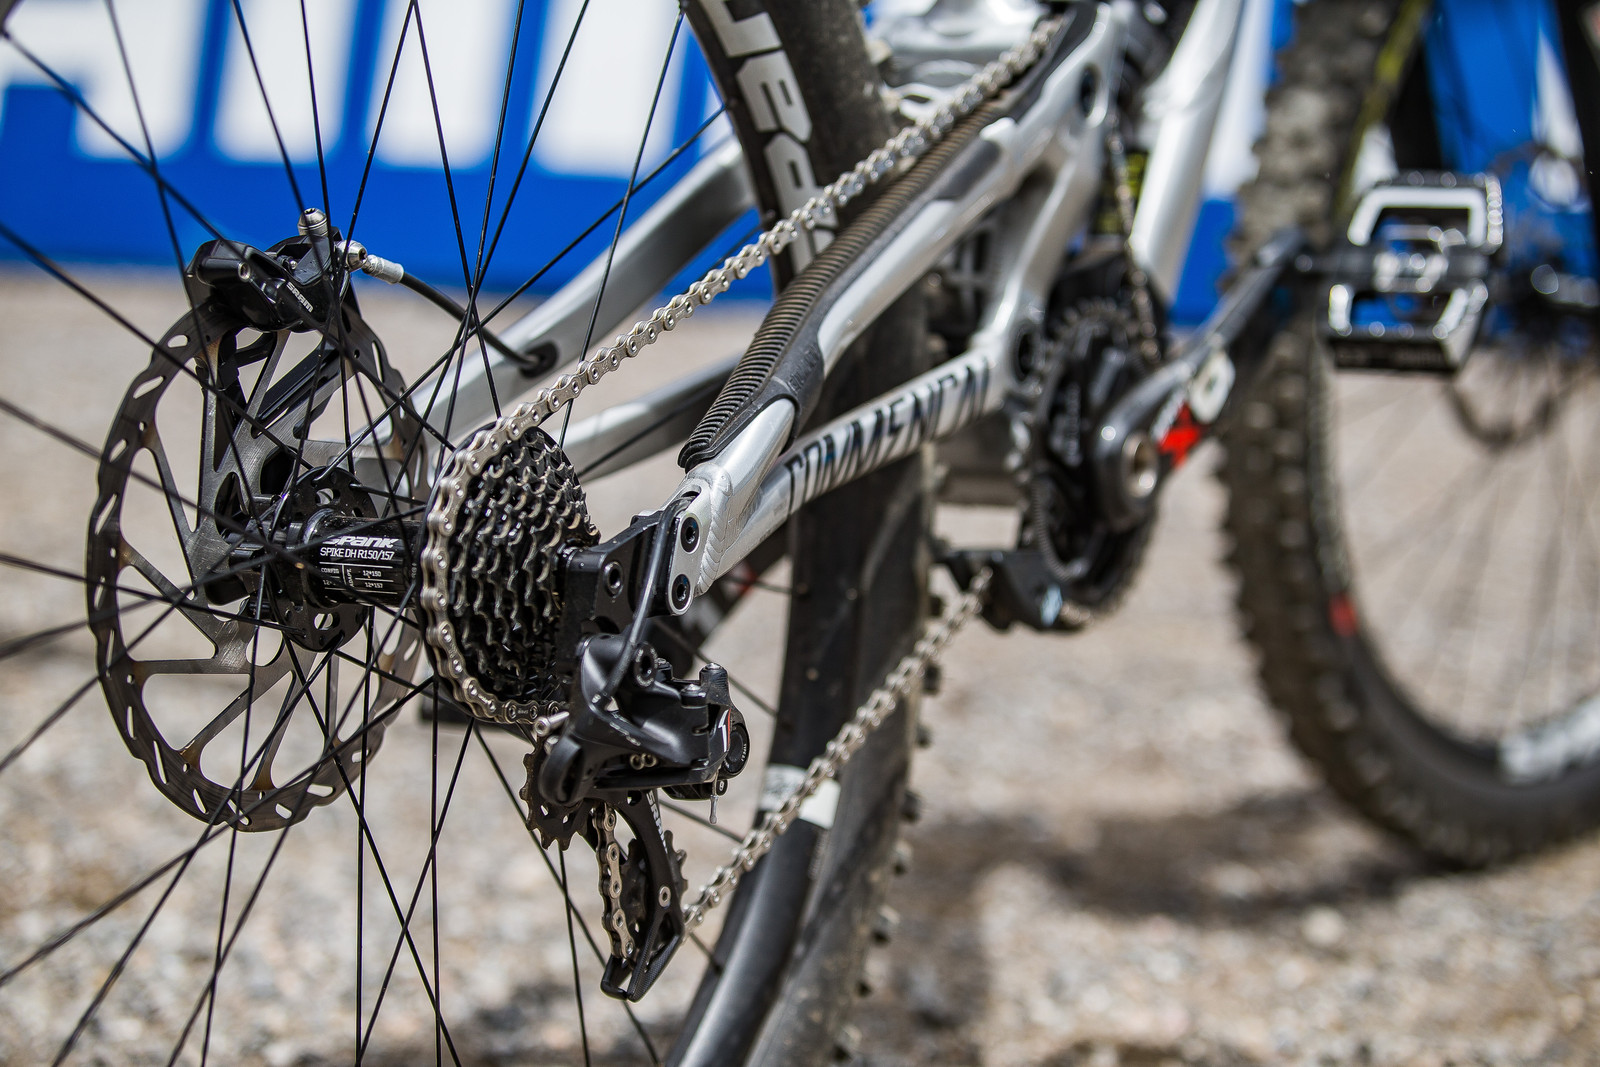 SRAM X0 DH 7-speed Drivetrain with Spank Spike DH Wheelset - WINNING BIKE: Myriam Nicole's Commencal Supreme DH V4 - Mountain Biking Pictures - Vital MTB